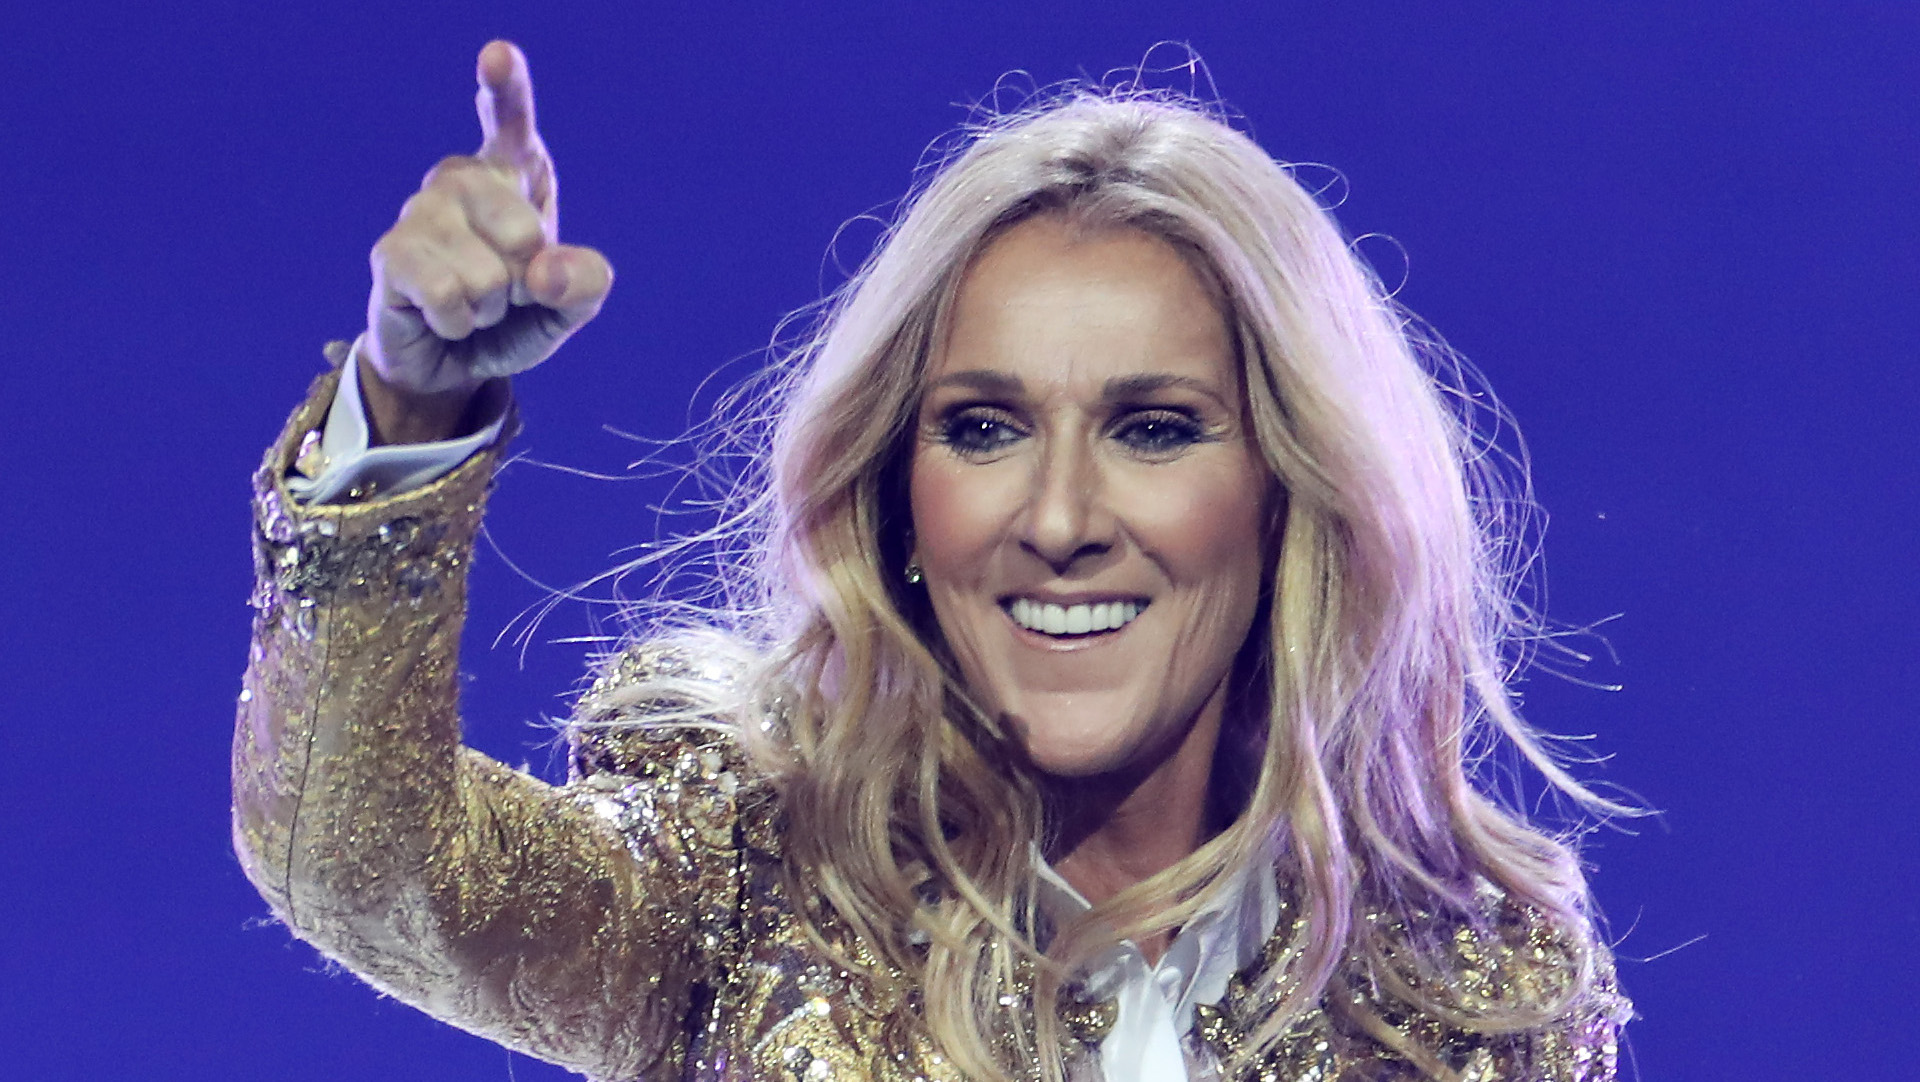 Céline Dion Creates Gender-Neutral Kids Clothing Line, Celinununu